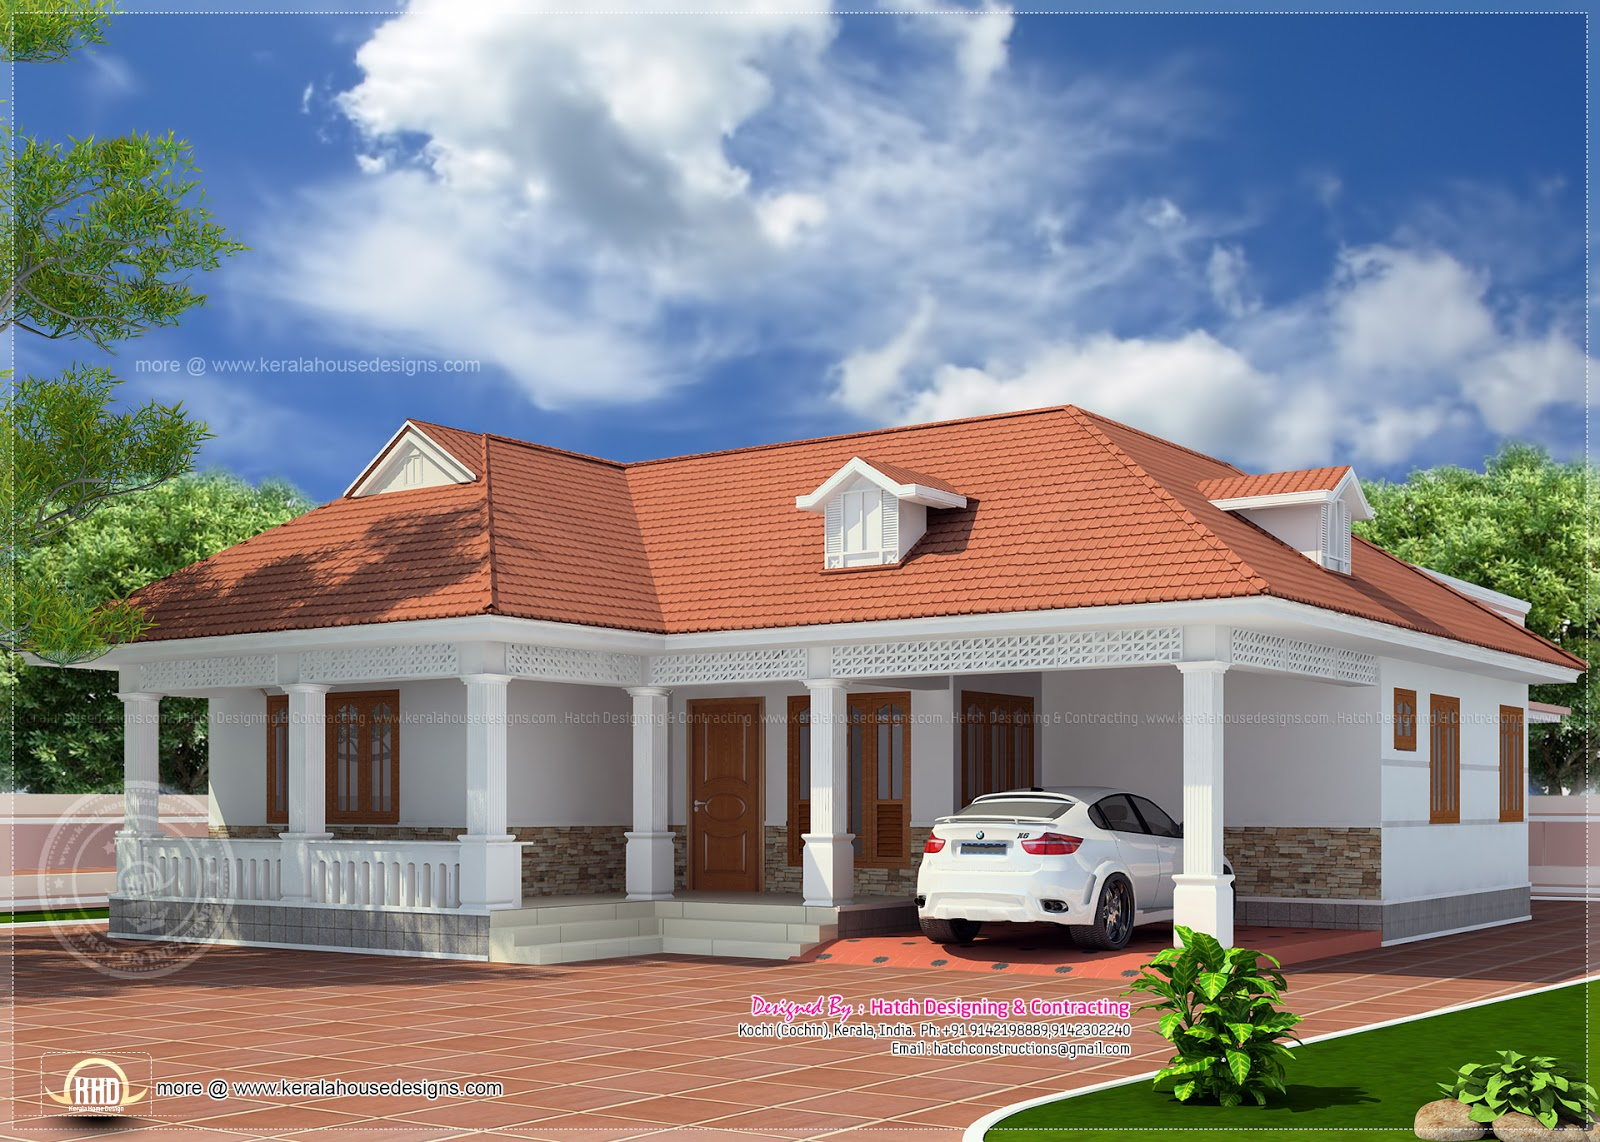 1850 kerala style home elevation kerala home for Kerala home plan